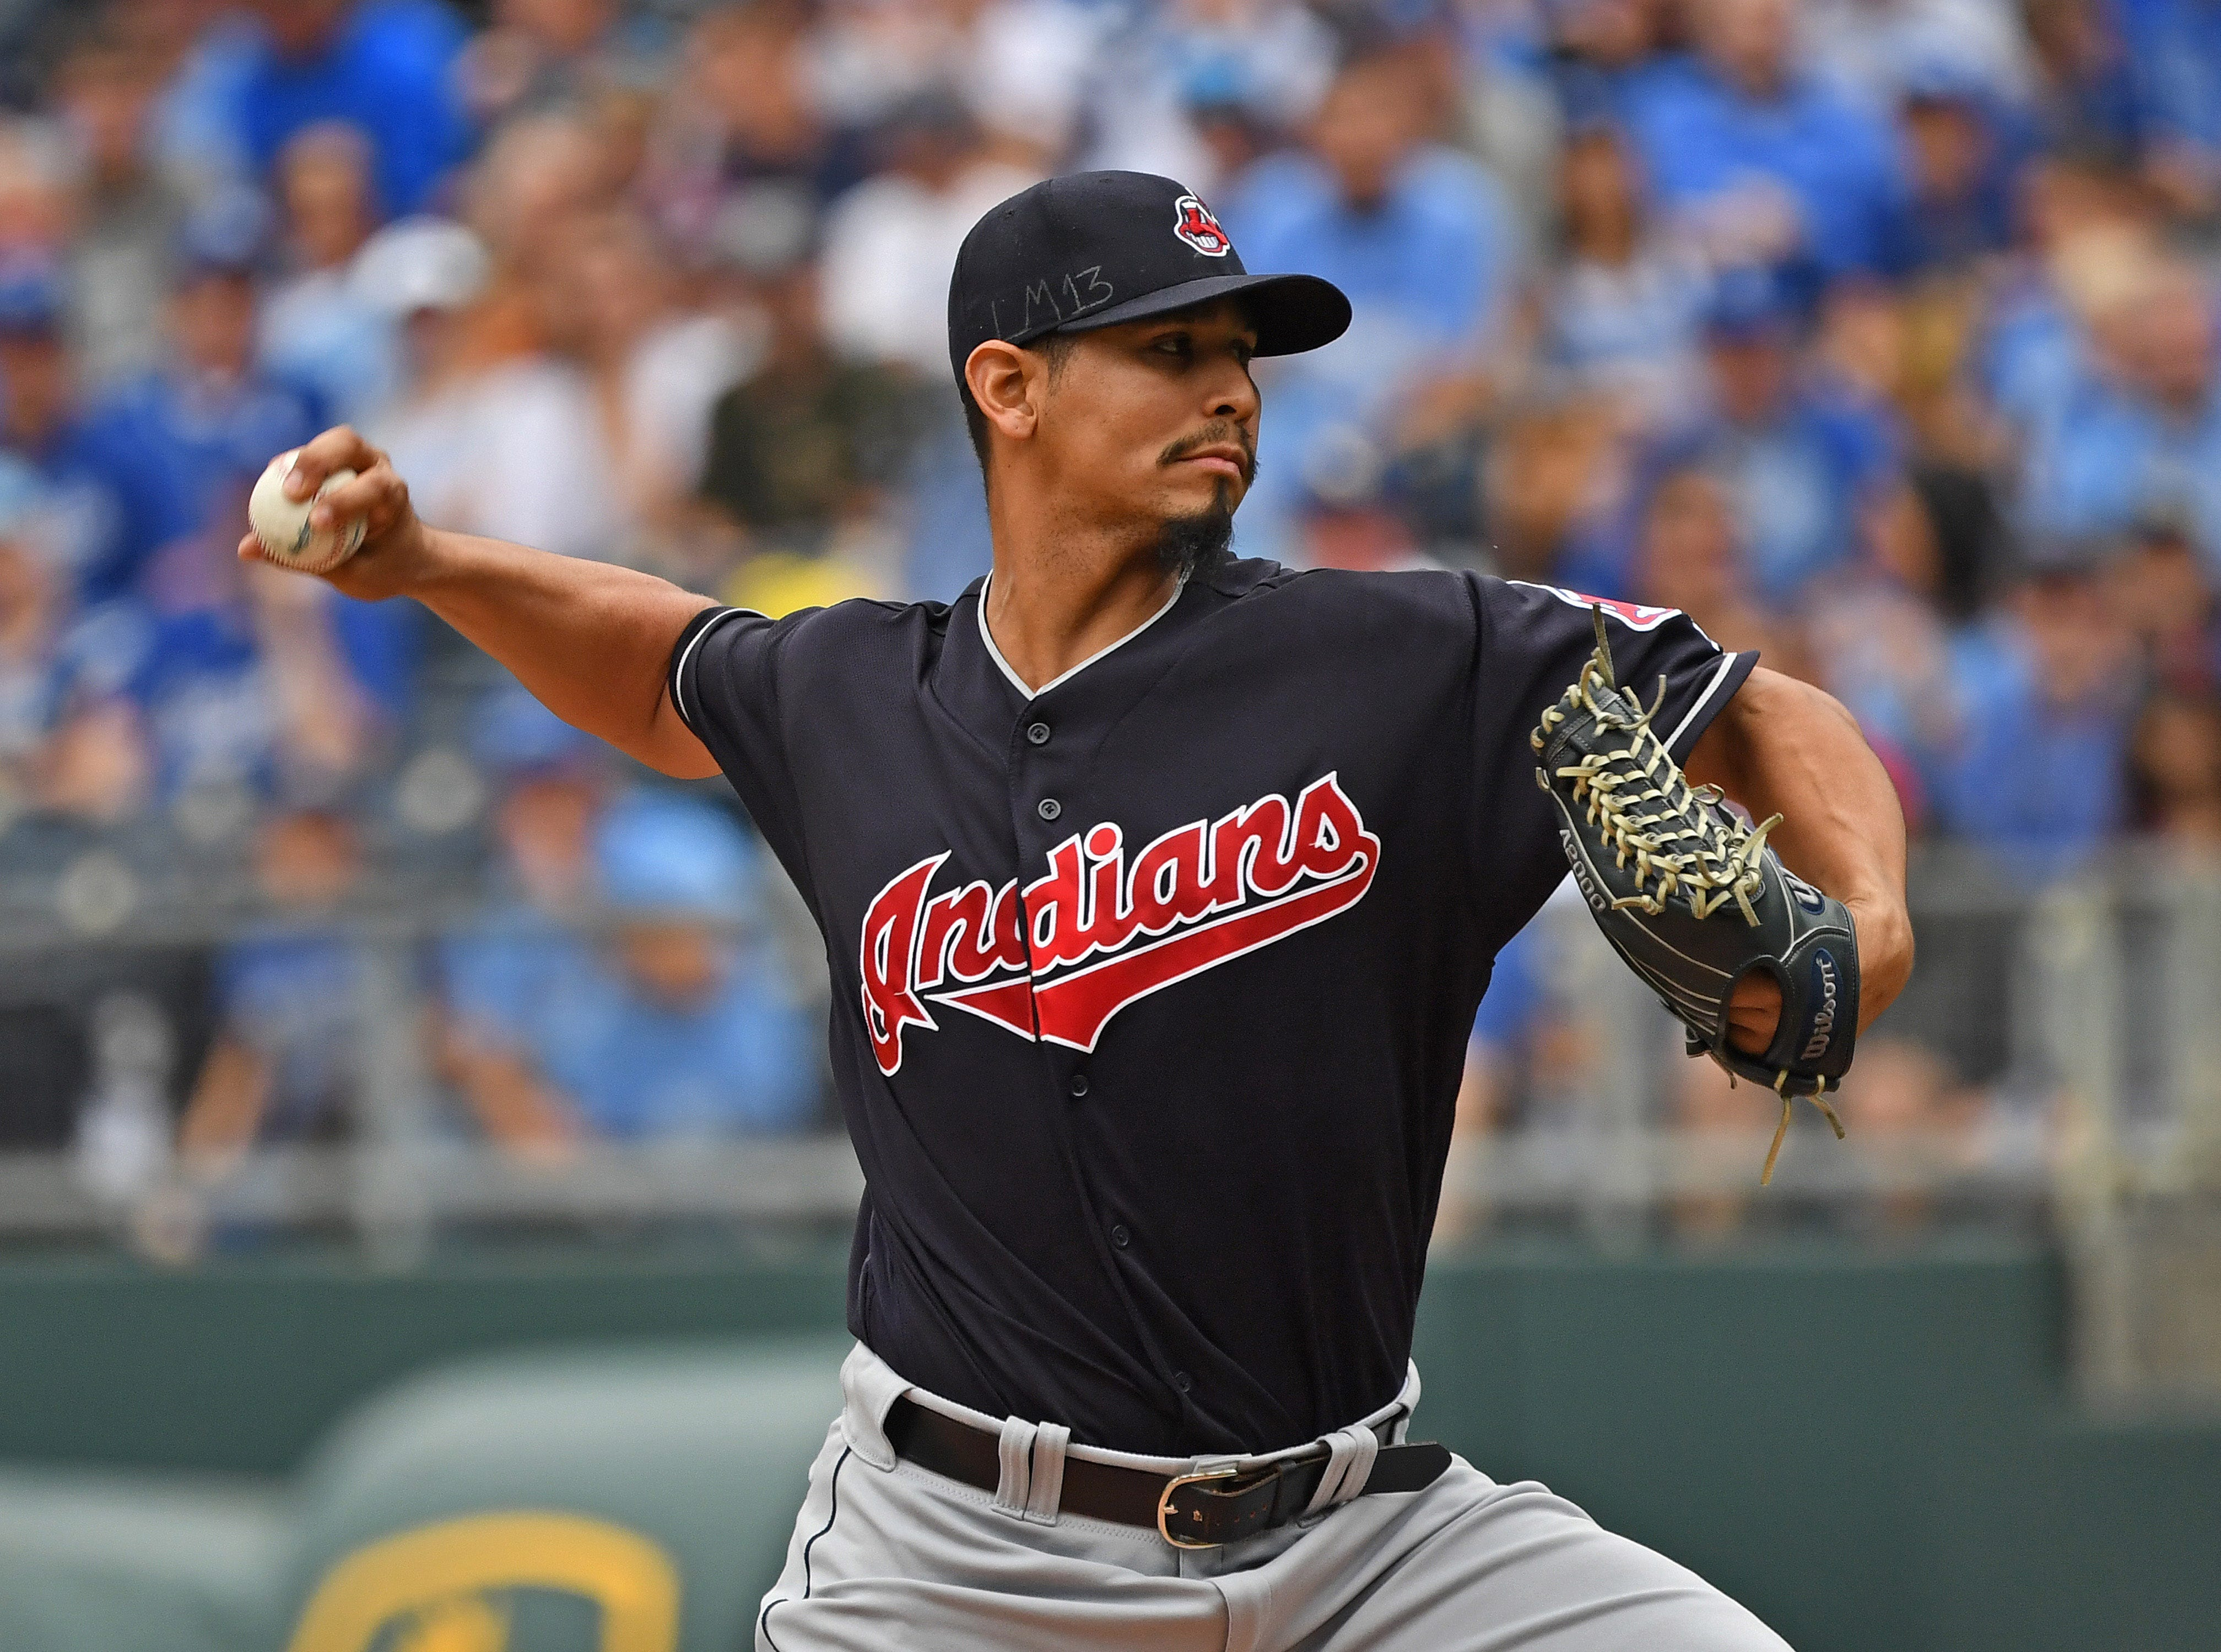 30. Carlos Carrasco, Cleveland Indians starting pitcher.